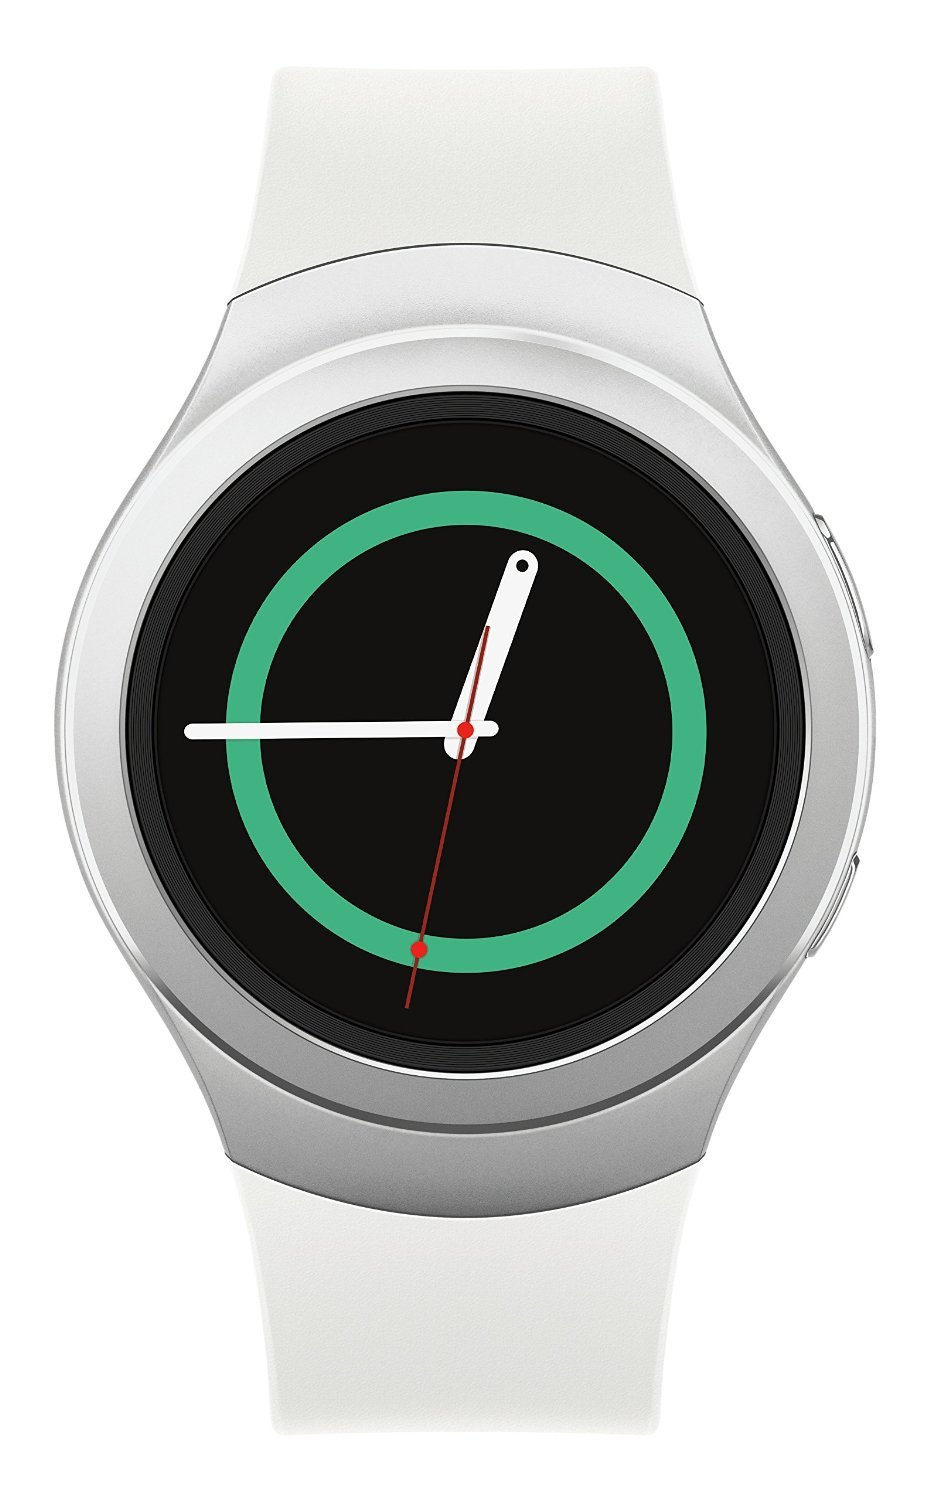 Samsung Gear S2 R730A (AT&T + Wi-Fi) Dust and Water Resistant Smartwatch - Silver (Renewed)